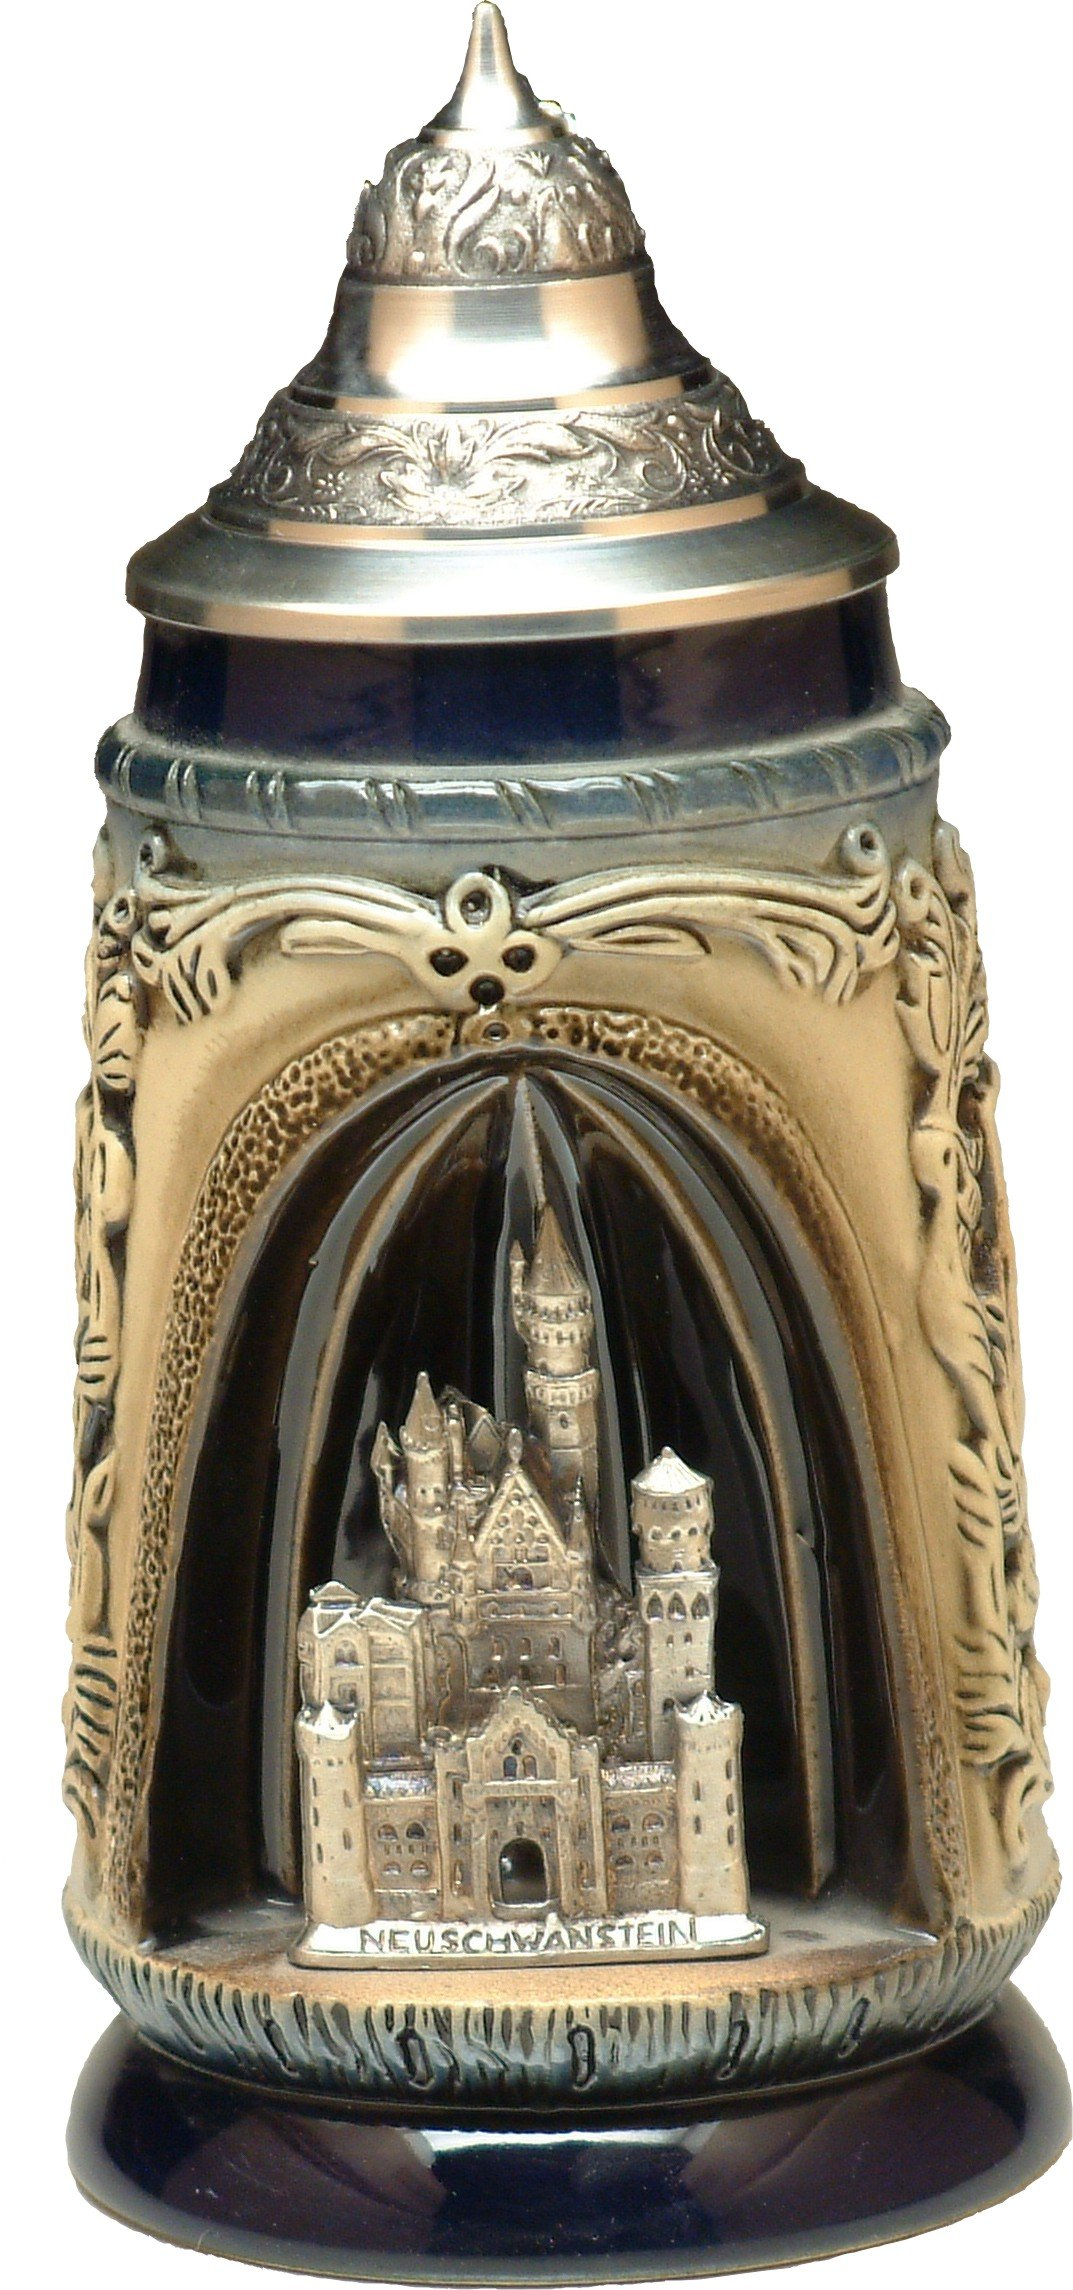 Beer Stein by King - Romantic Sites Newschwanstein Castle German Beer Stein (Beer Mug) 0.5l